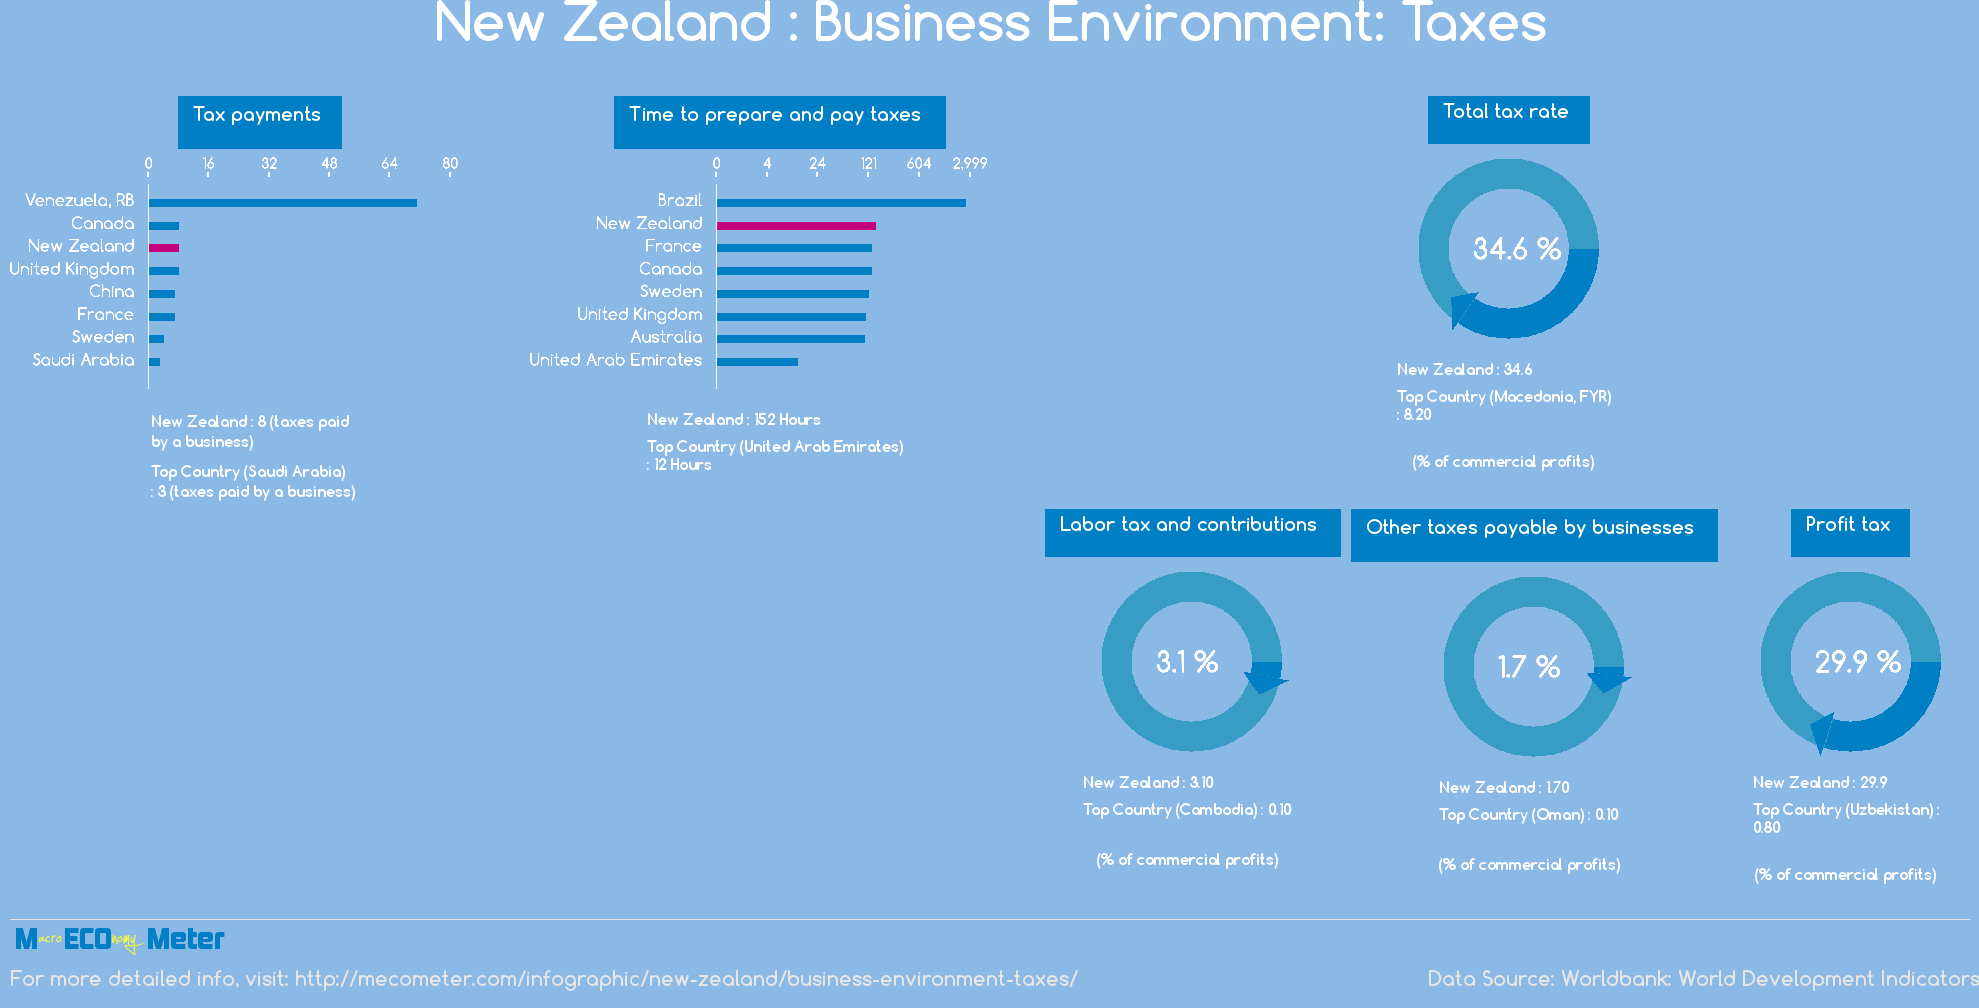 New Zealand : Business Environment: Taxes